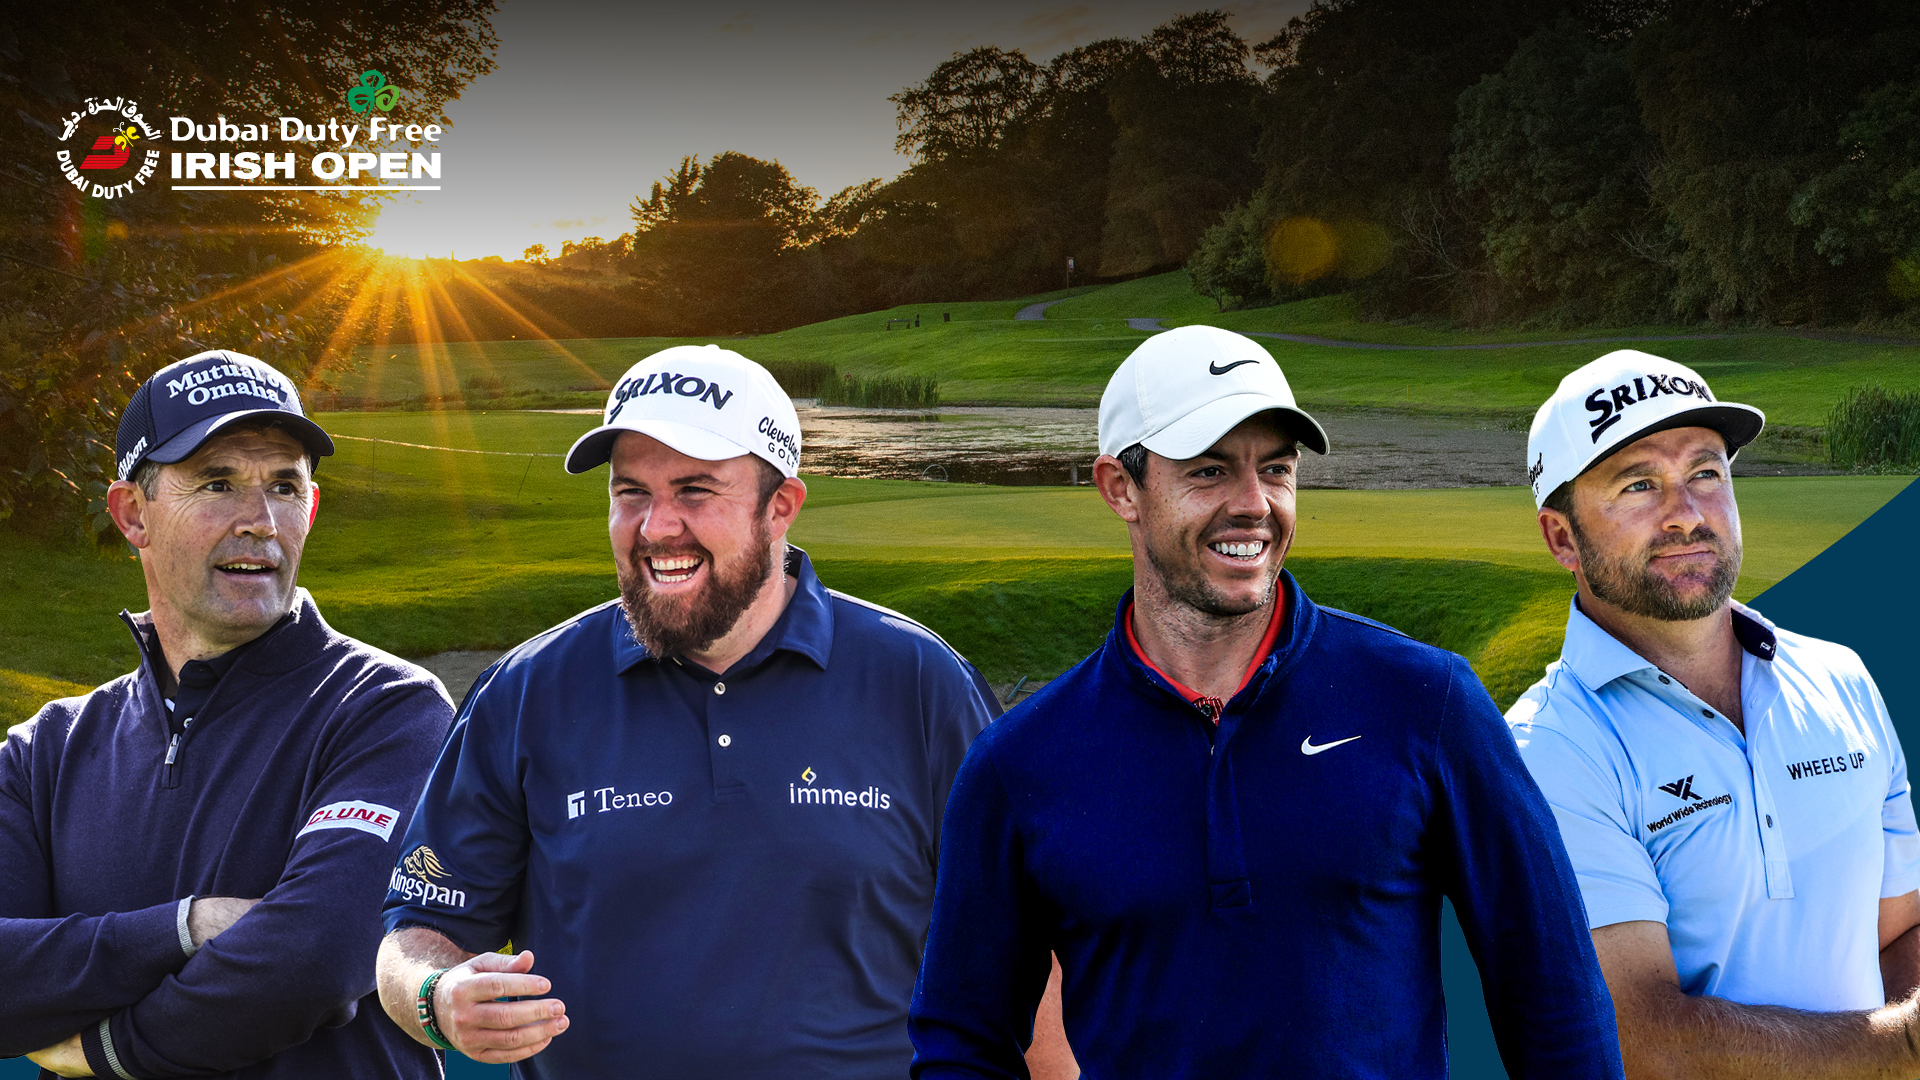 Overnight Stay and Dinner with Tickets to the Dubai Duty Free Irish Open